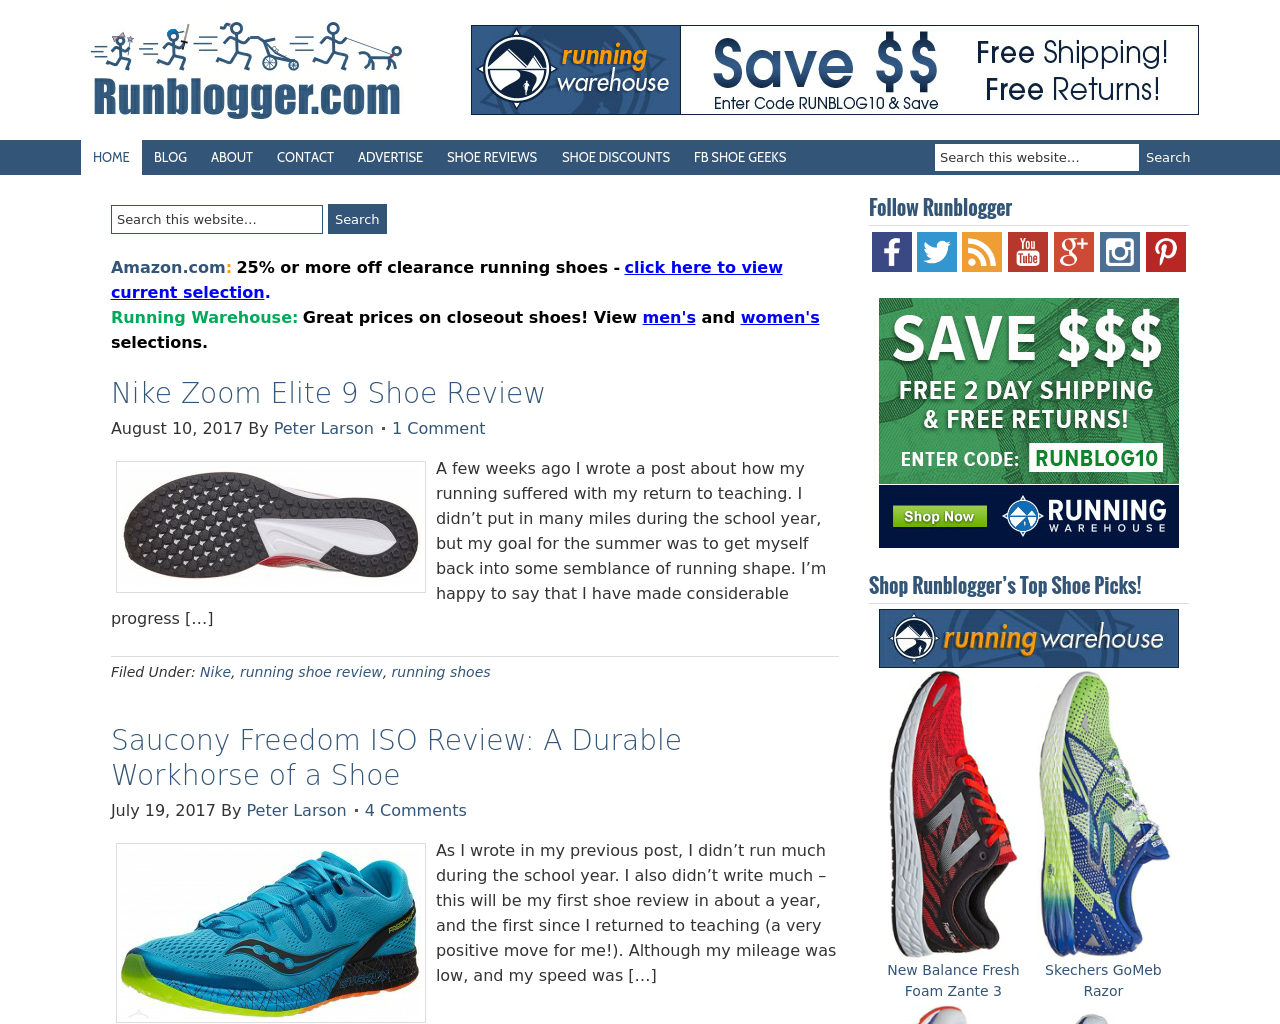 Runblogger-Advertising-Reviews-Pricing